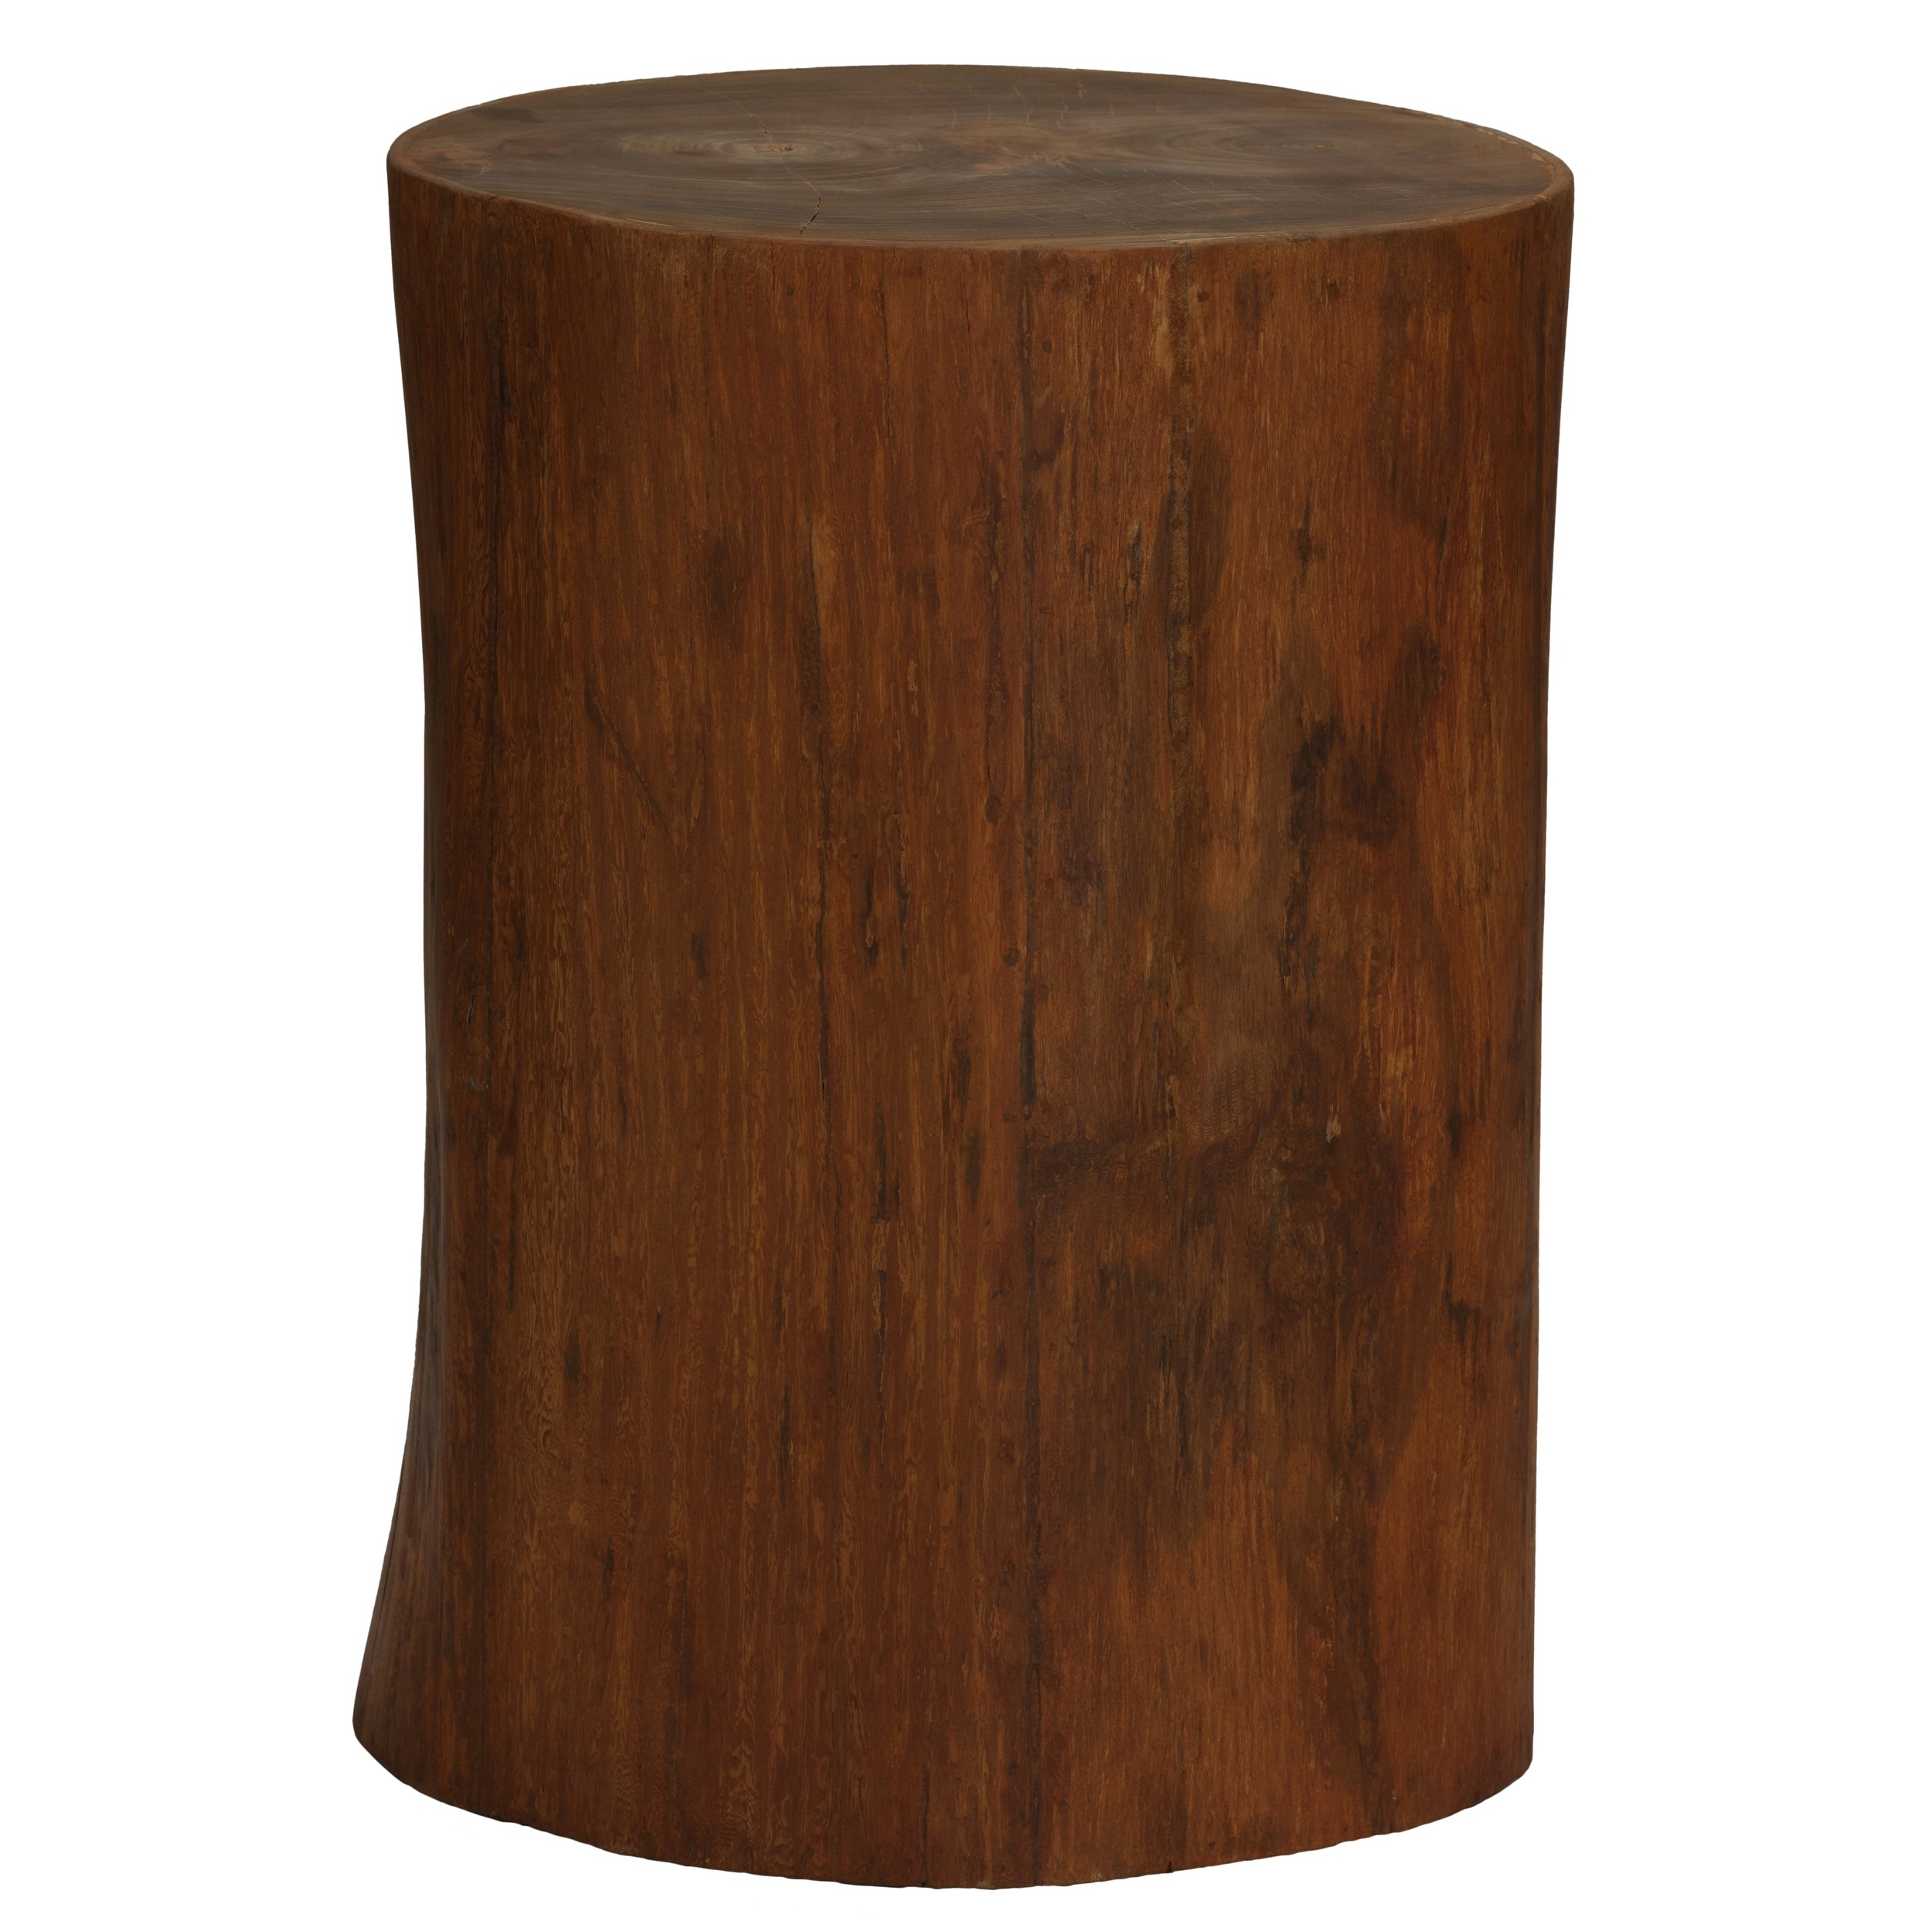 tall square end table the perfect nice tree stump target how make log night stand top industrial shaker plans sofa dimensions reading lamp barn style tables accent desk planner